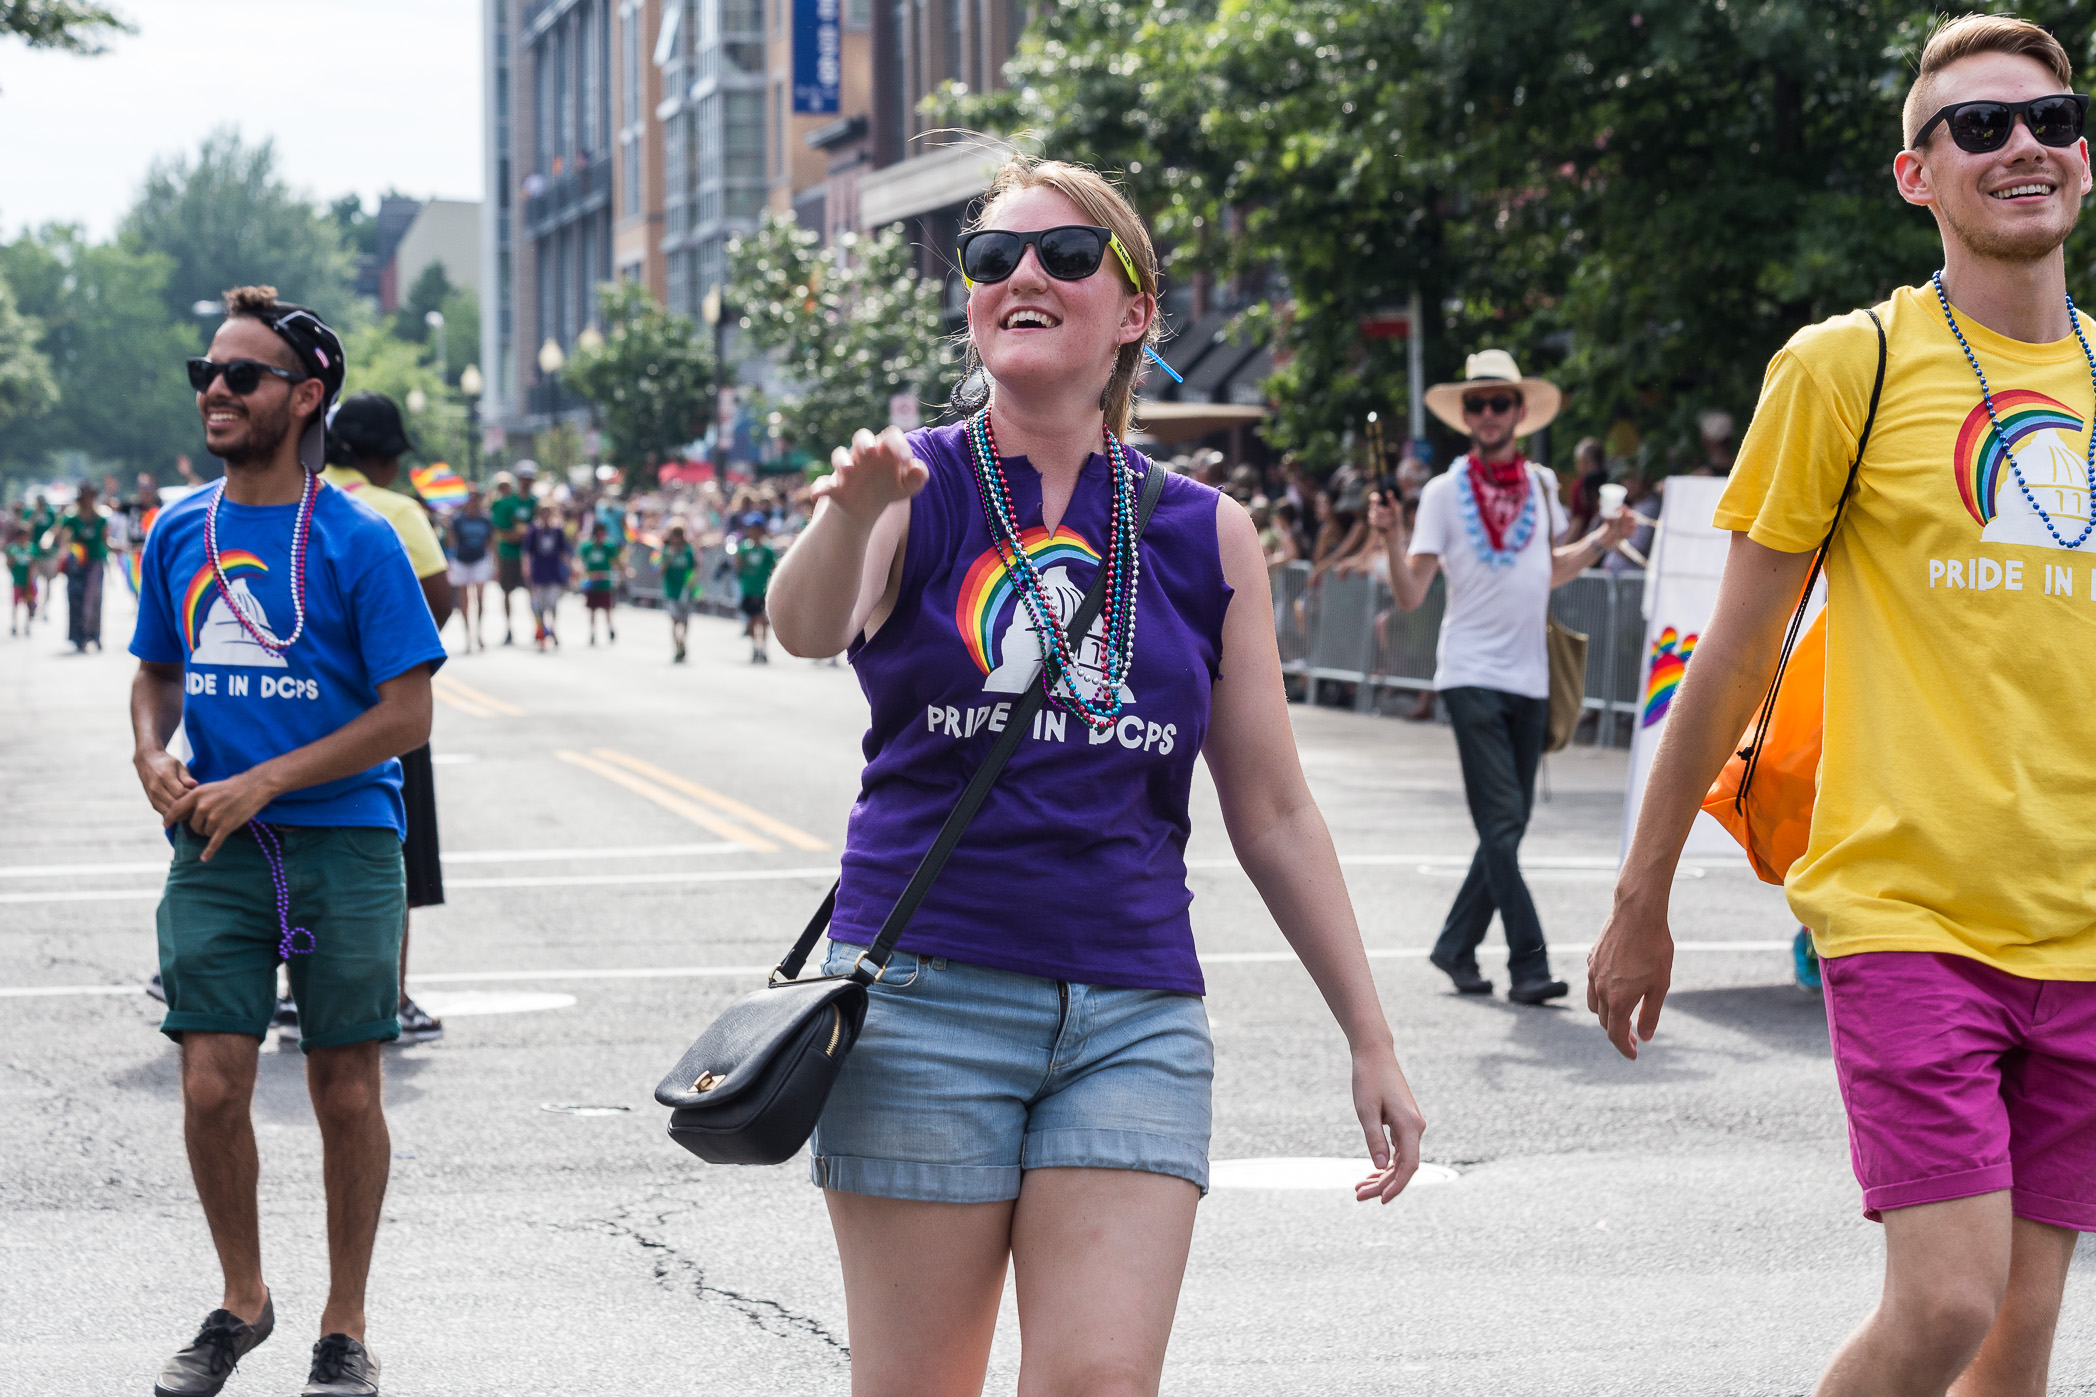 pride-parade-2015 (17 of 94)